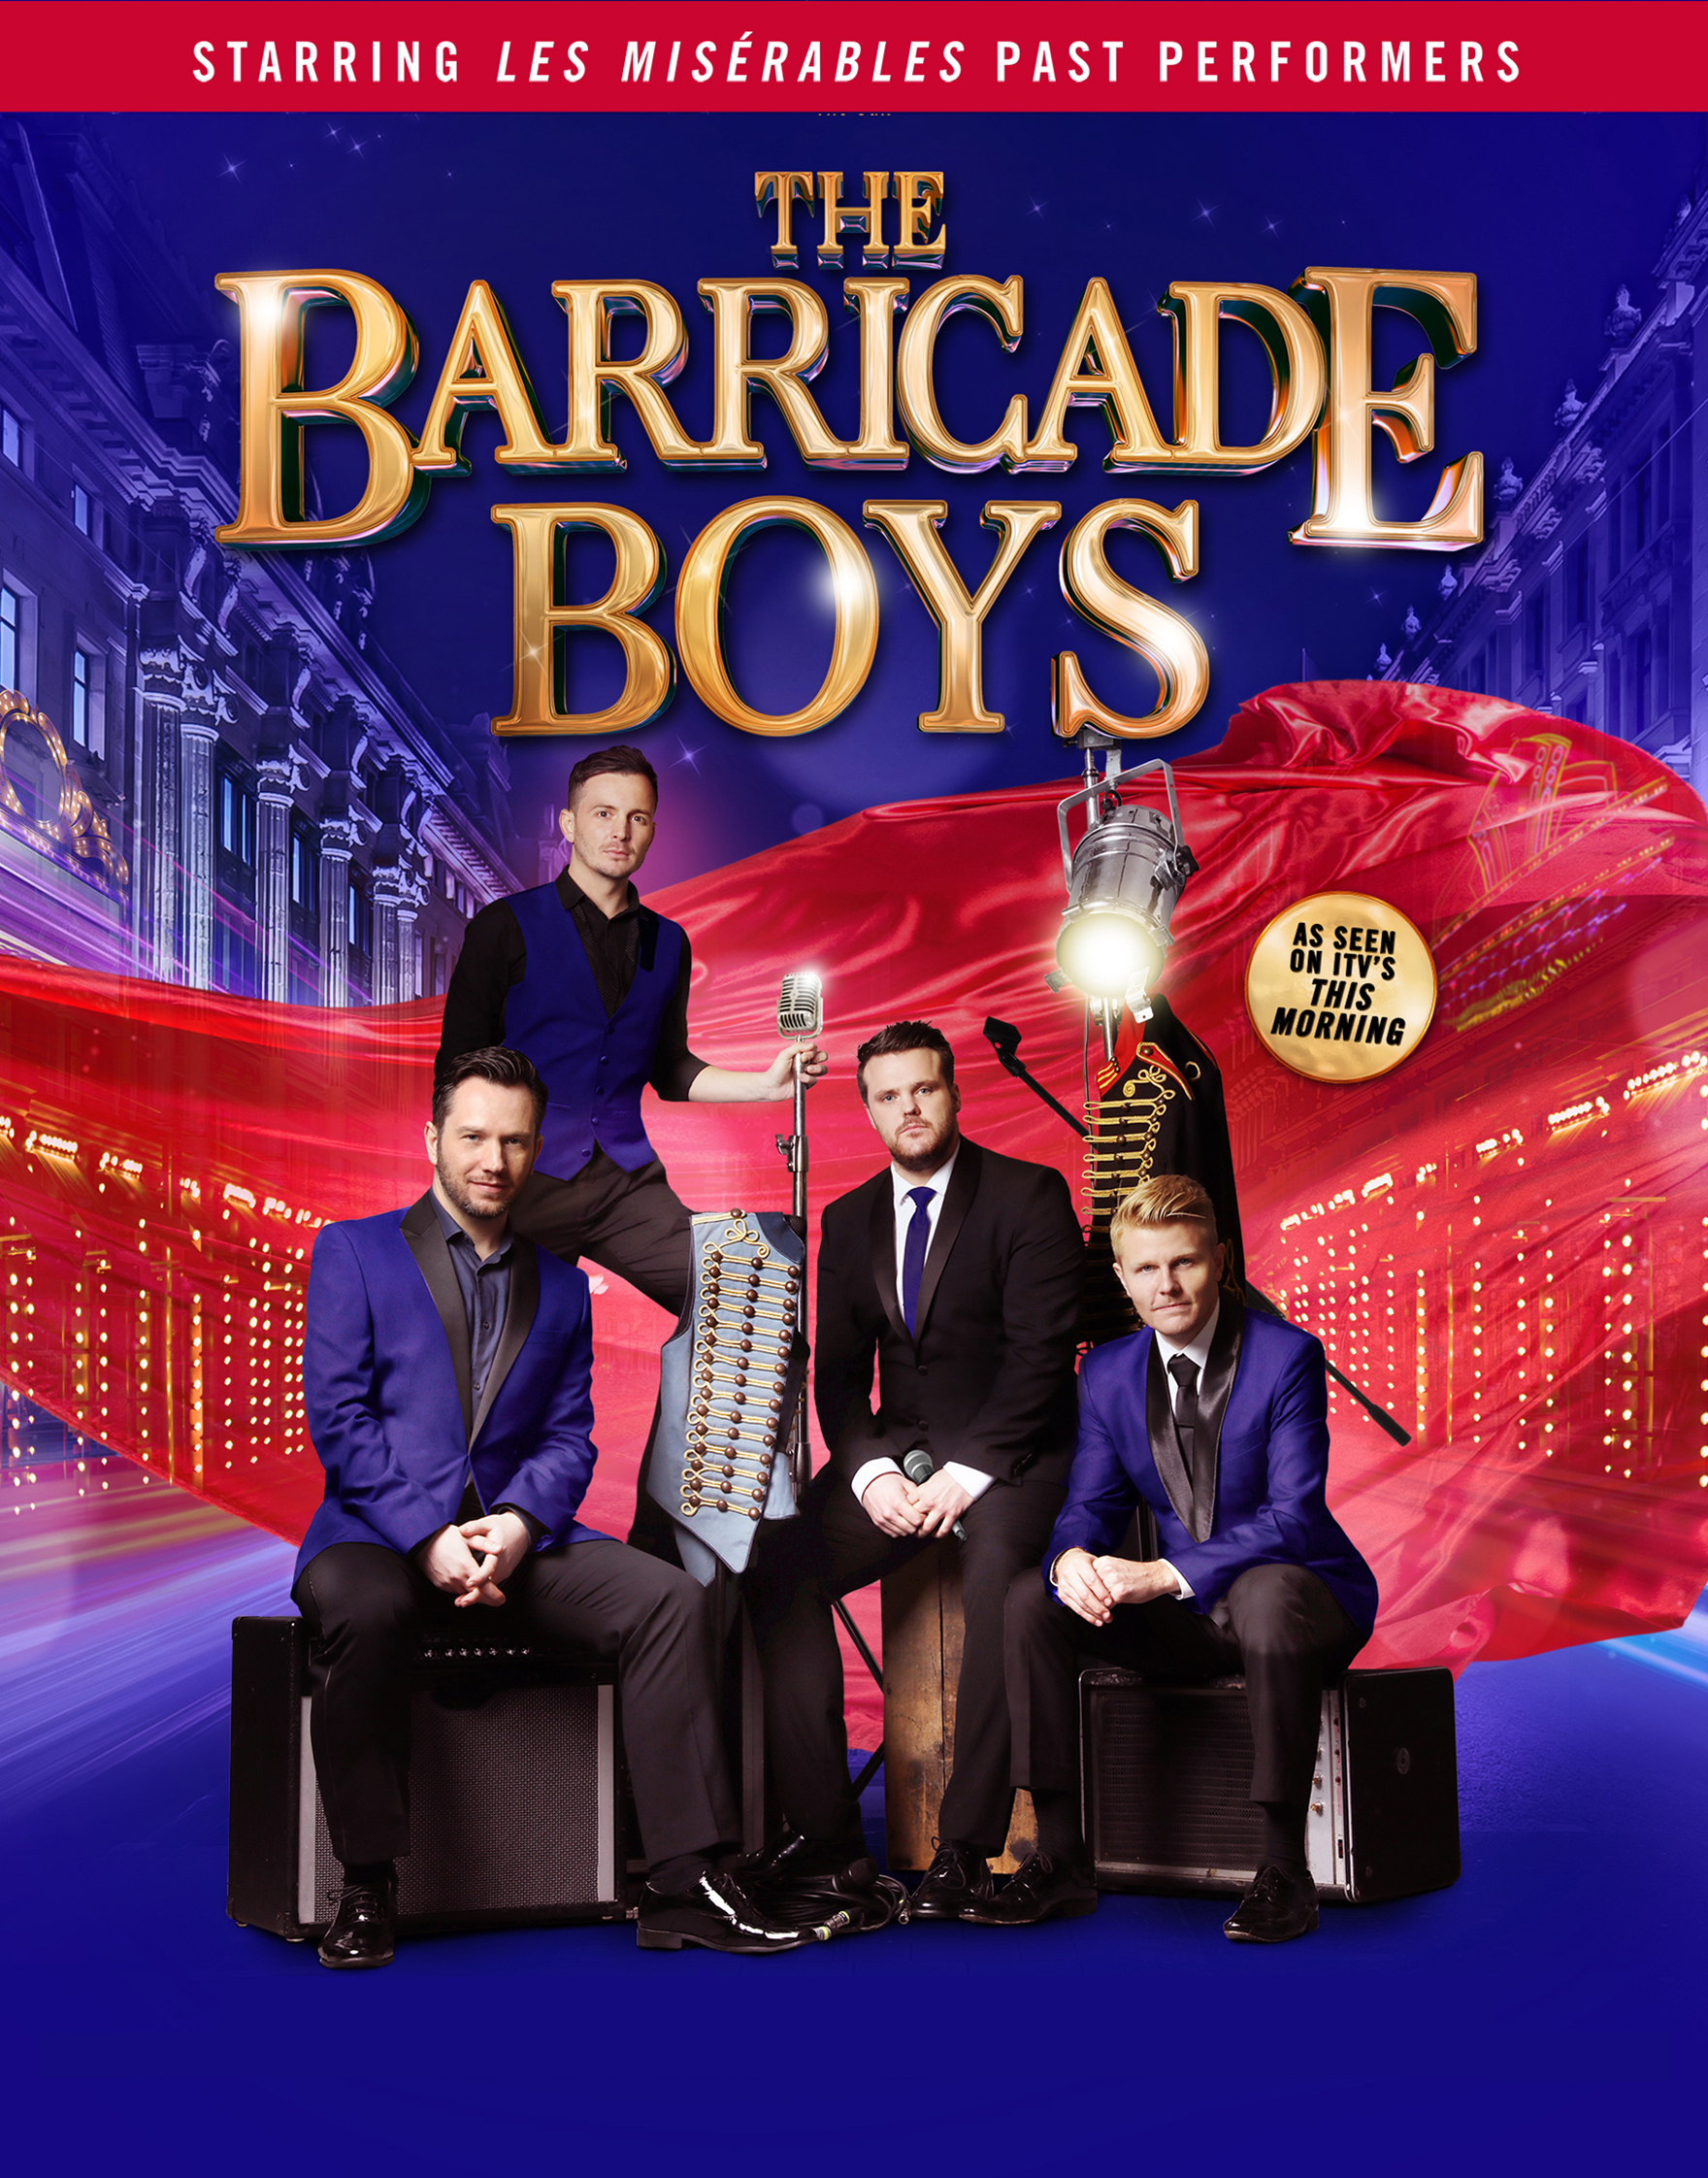 The Barricade Boys Palace Theatre Paignton